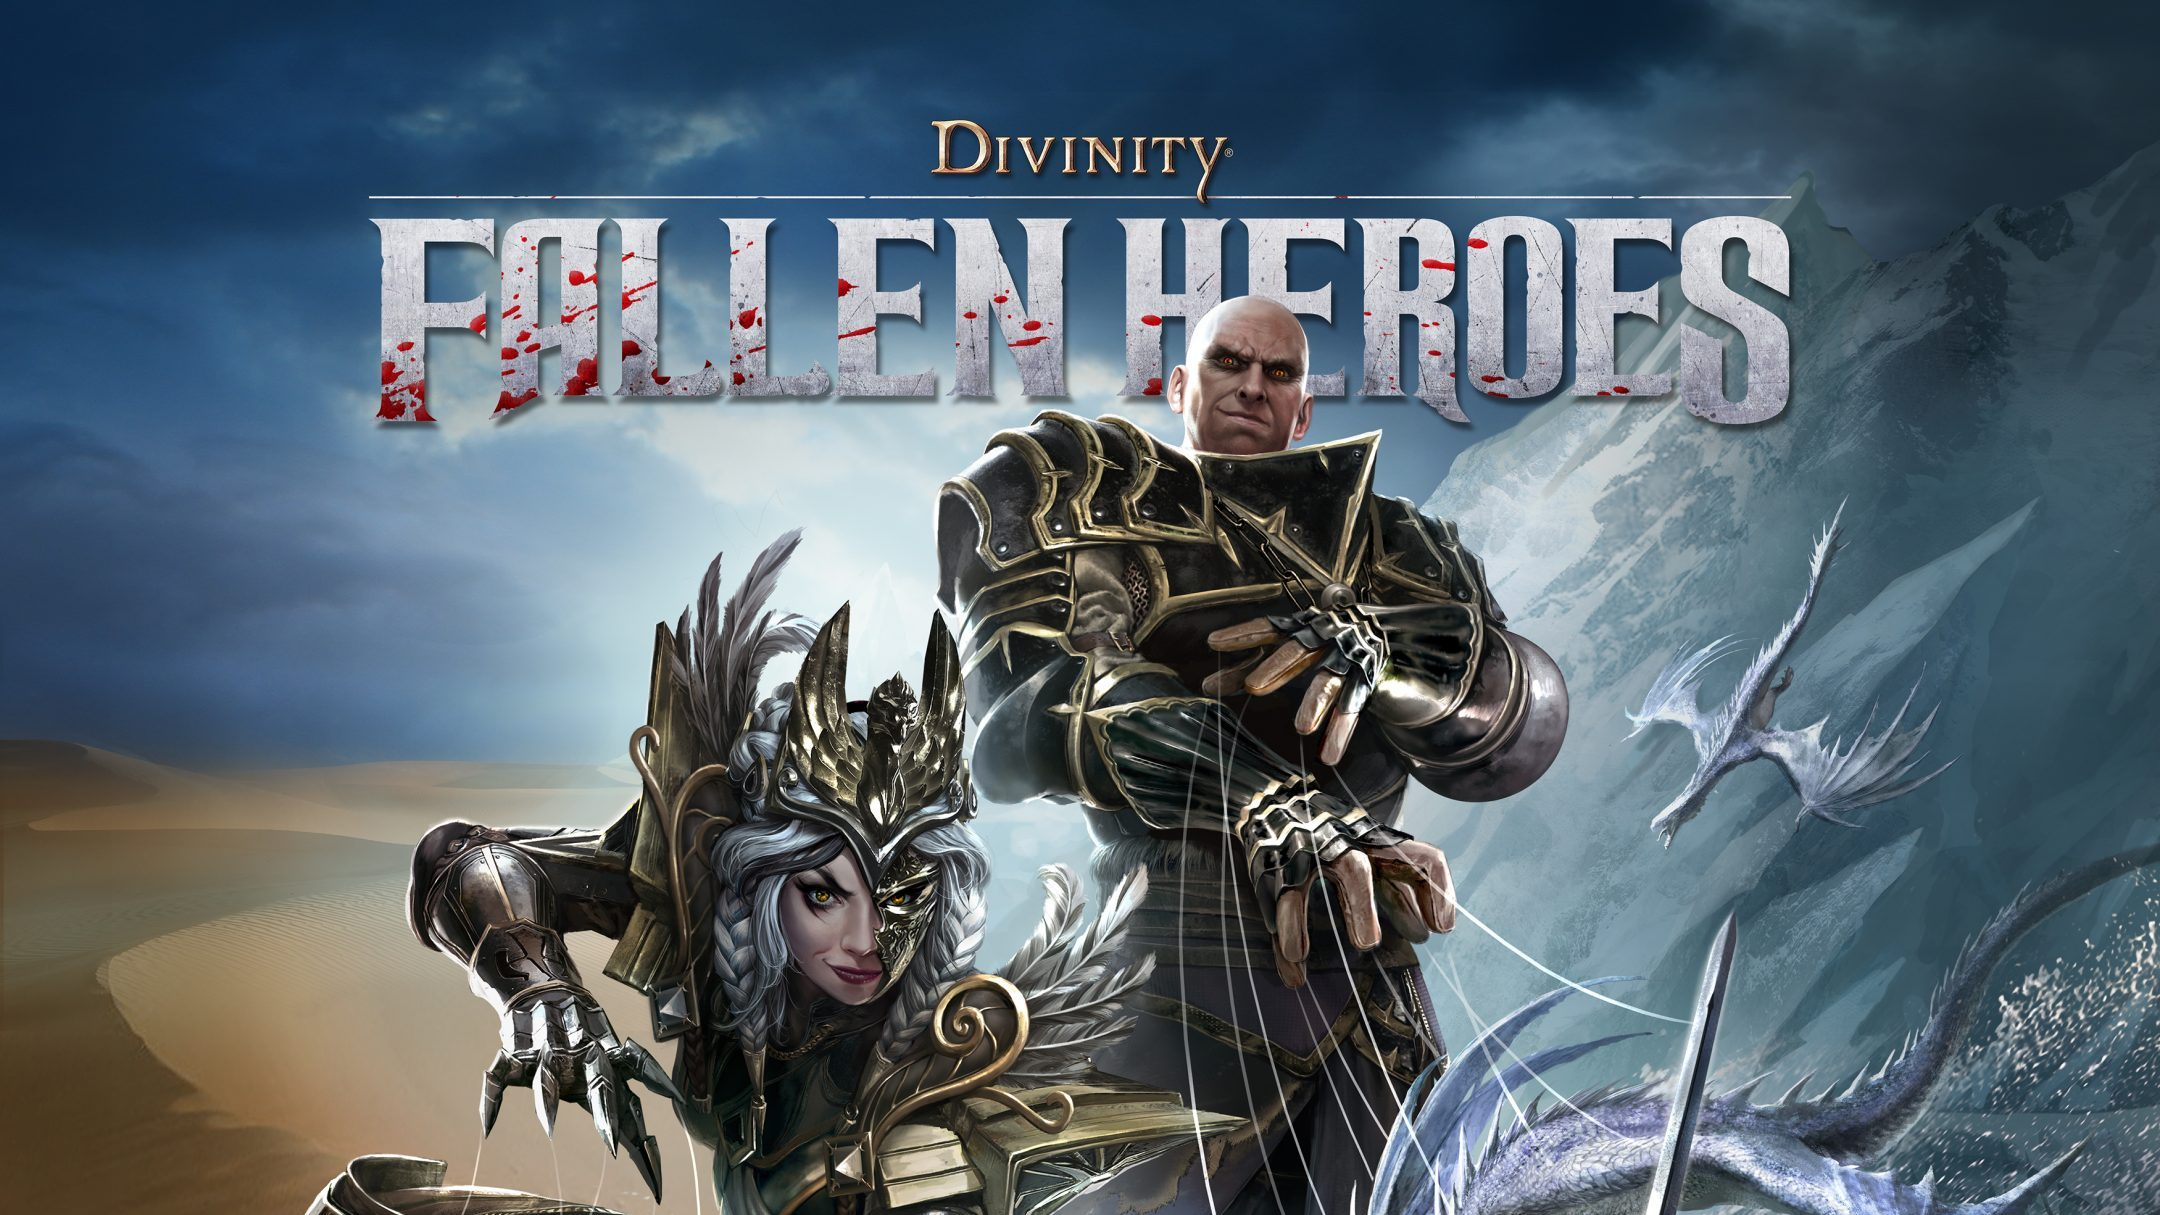 Divinity Fallen Heroes is a standalone game set in the